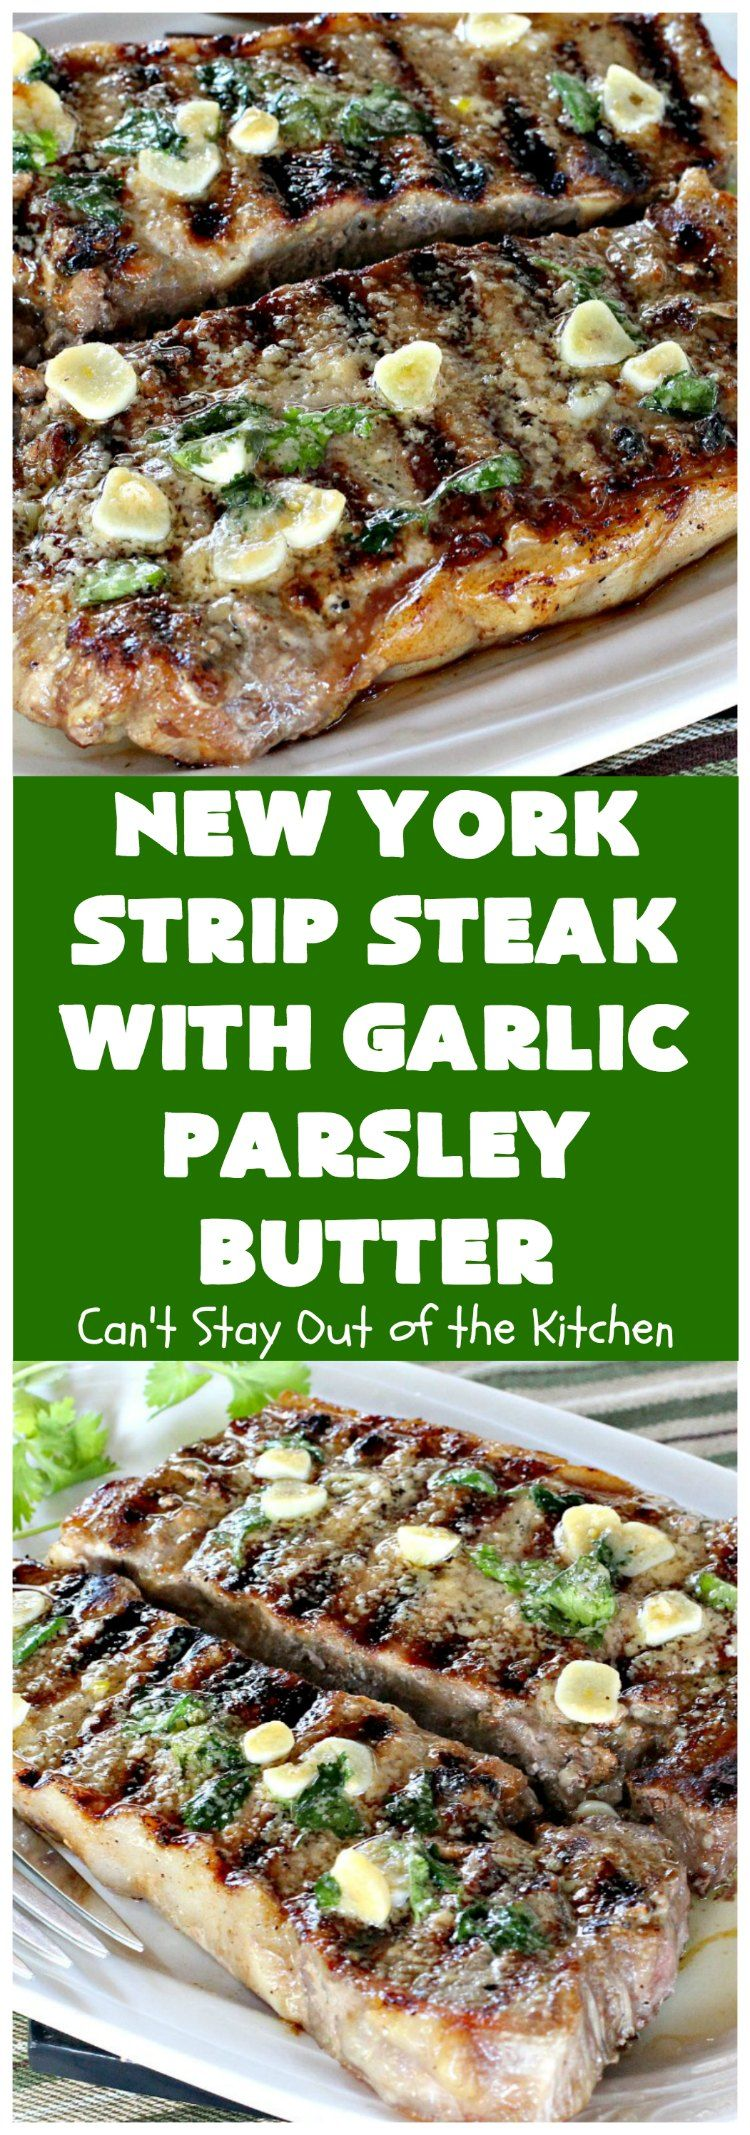 New York Strip Steak with Garlic Parsley Butter #beefsteakrecipe